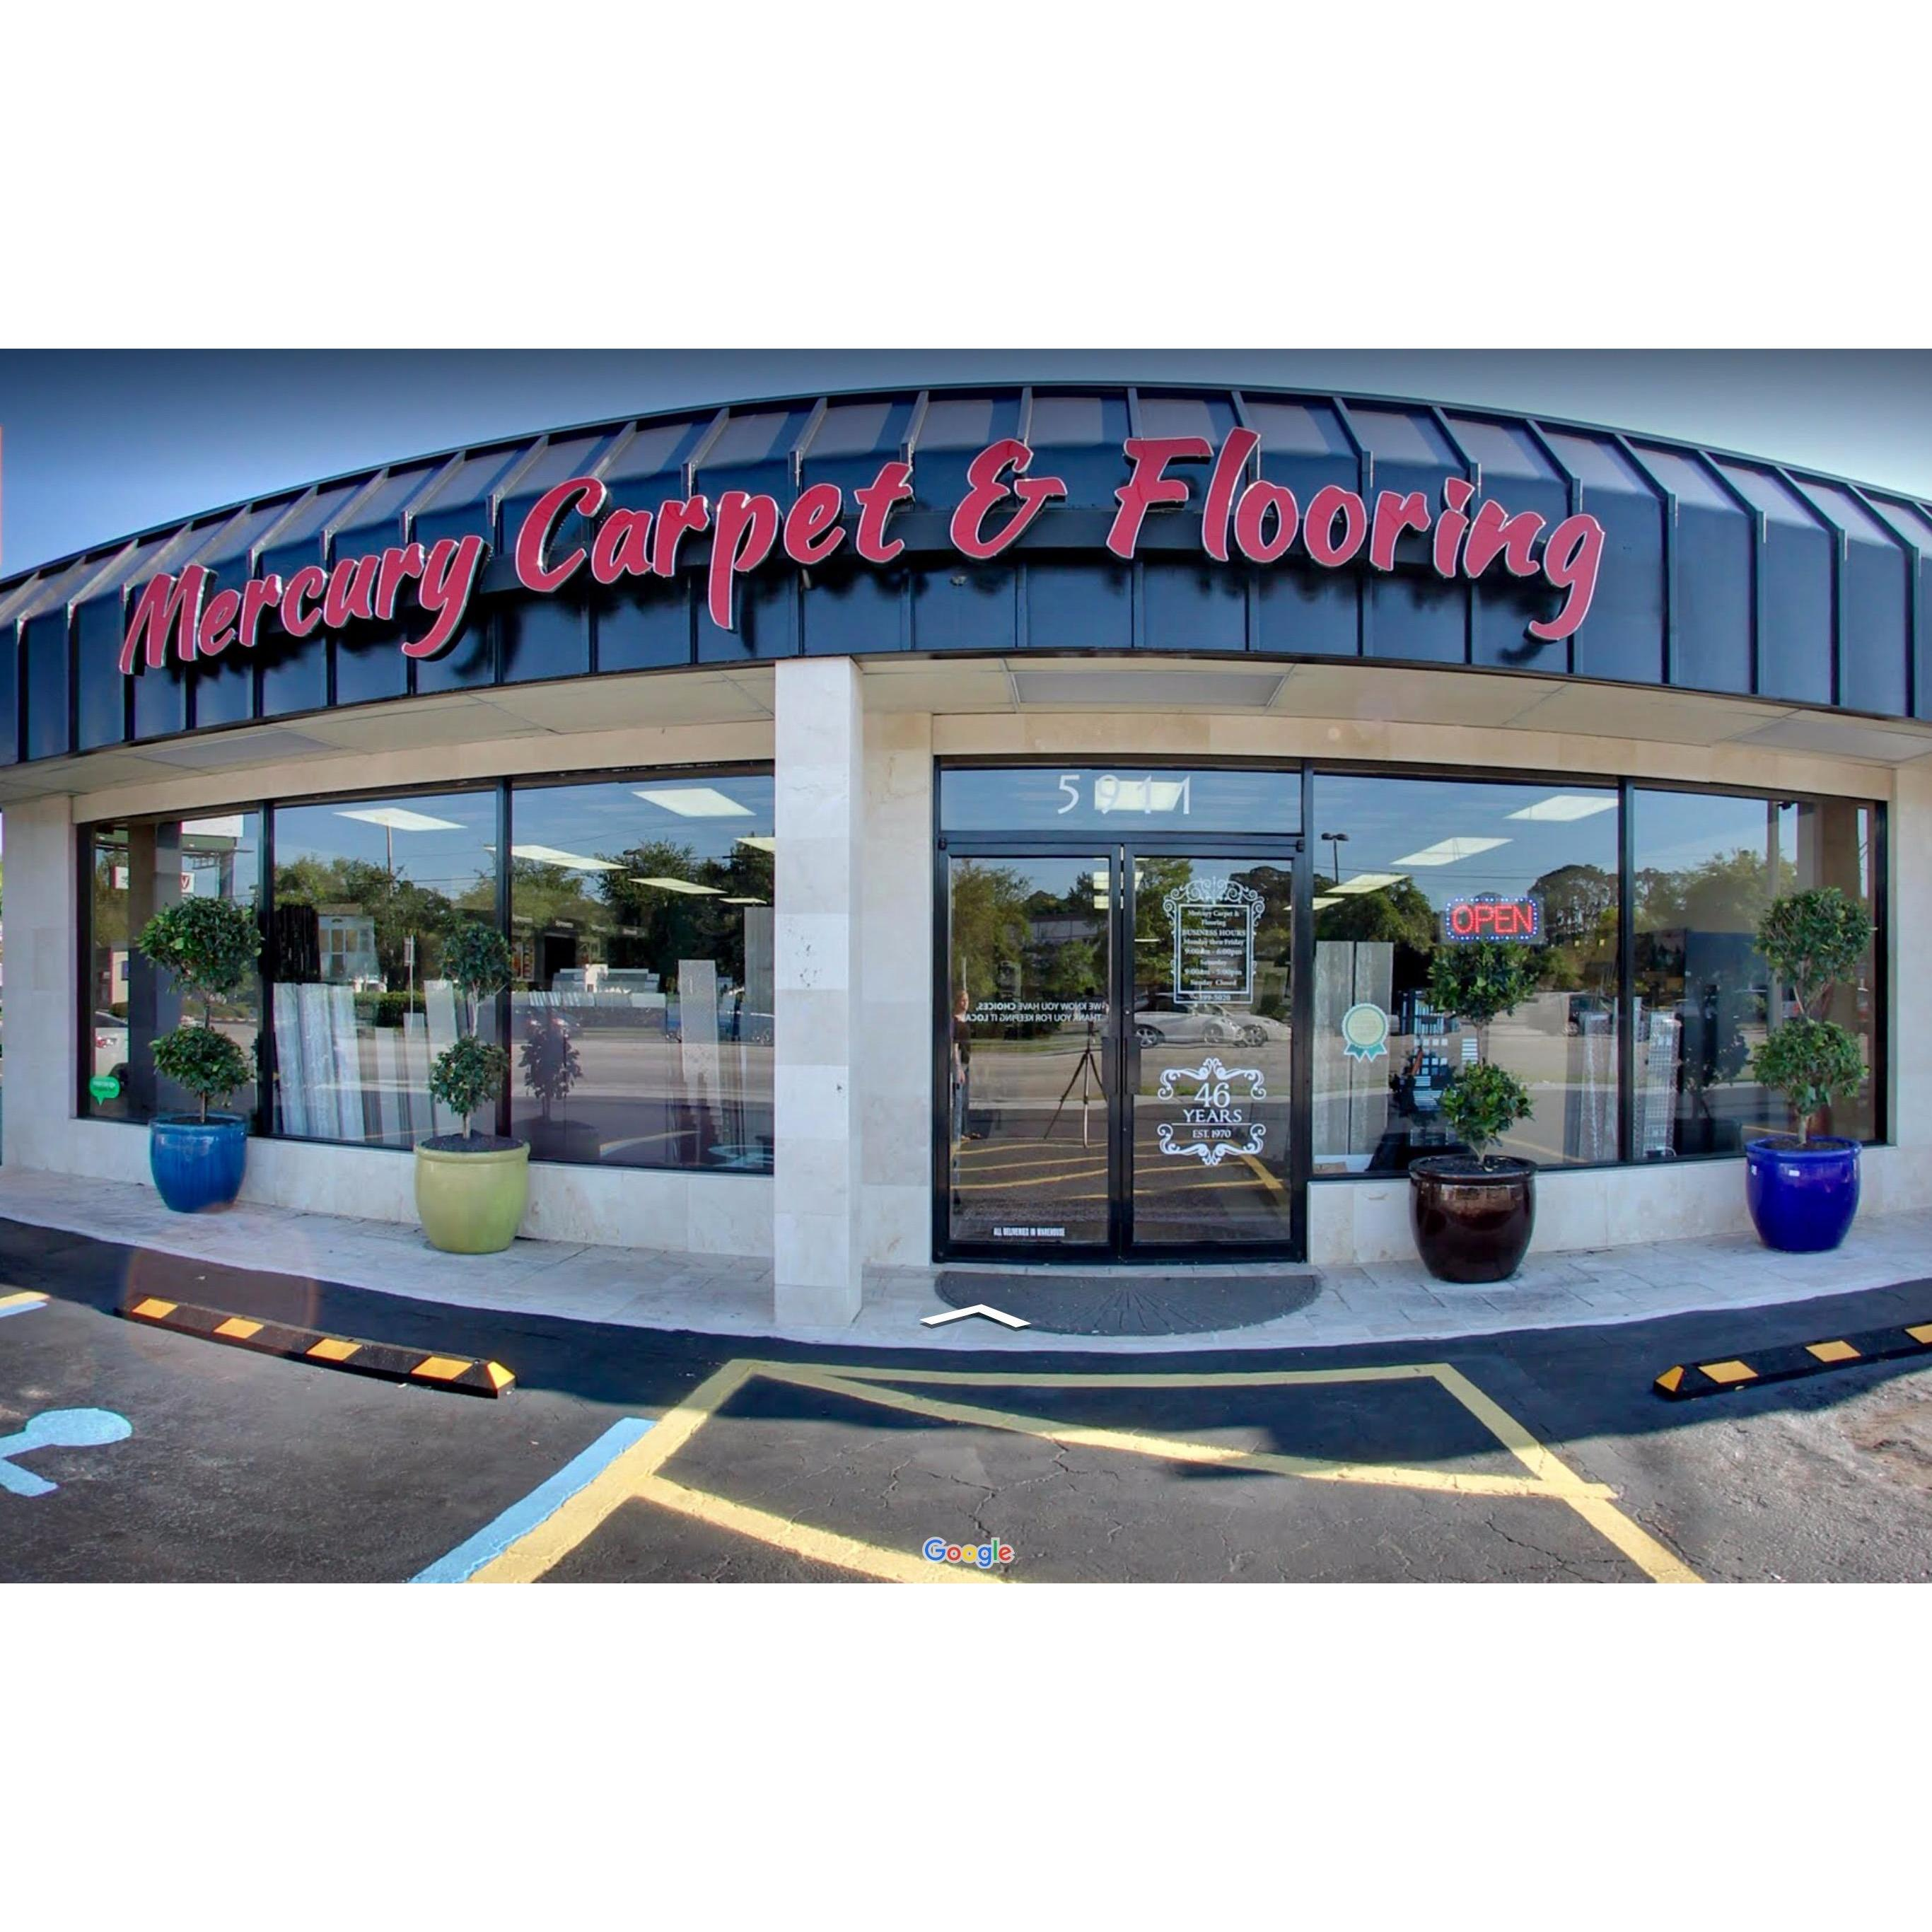 Mercury Carpet & Flooring - Jacksonville, FL - Carpet & Floor Coverings